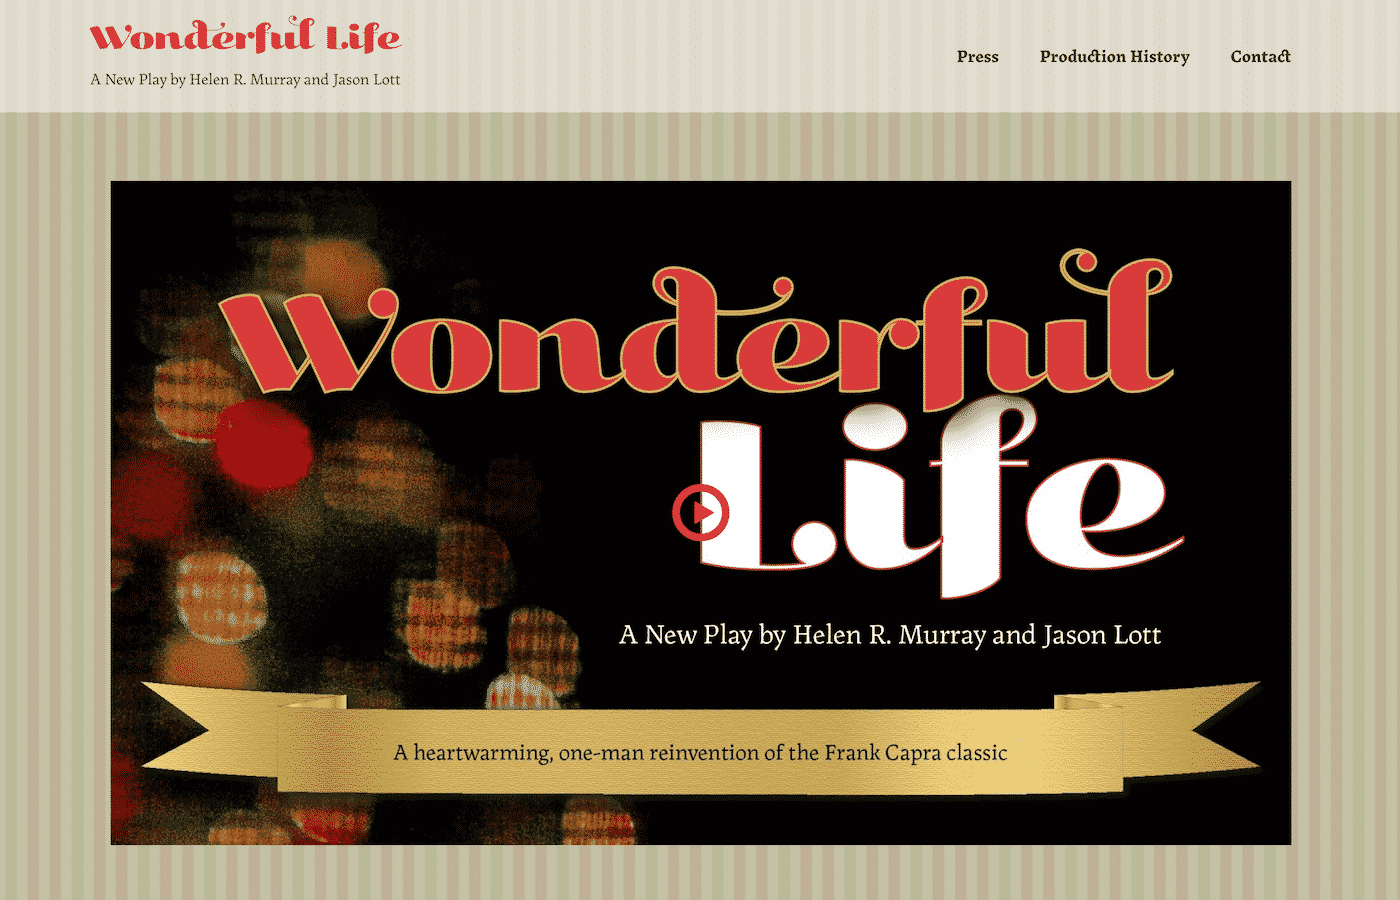 Wonderful Life the Play